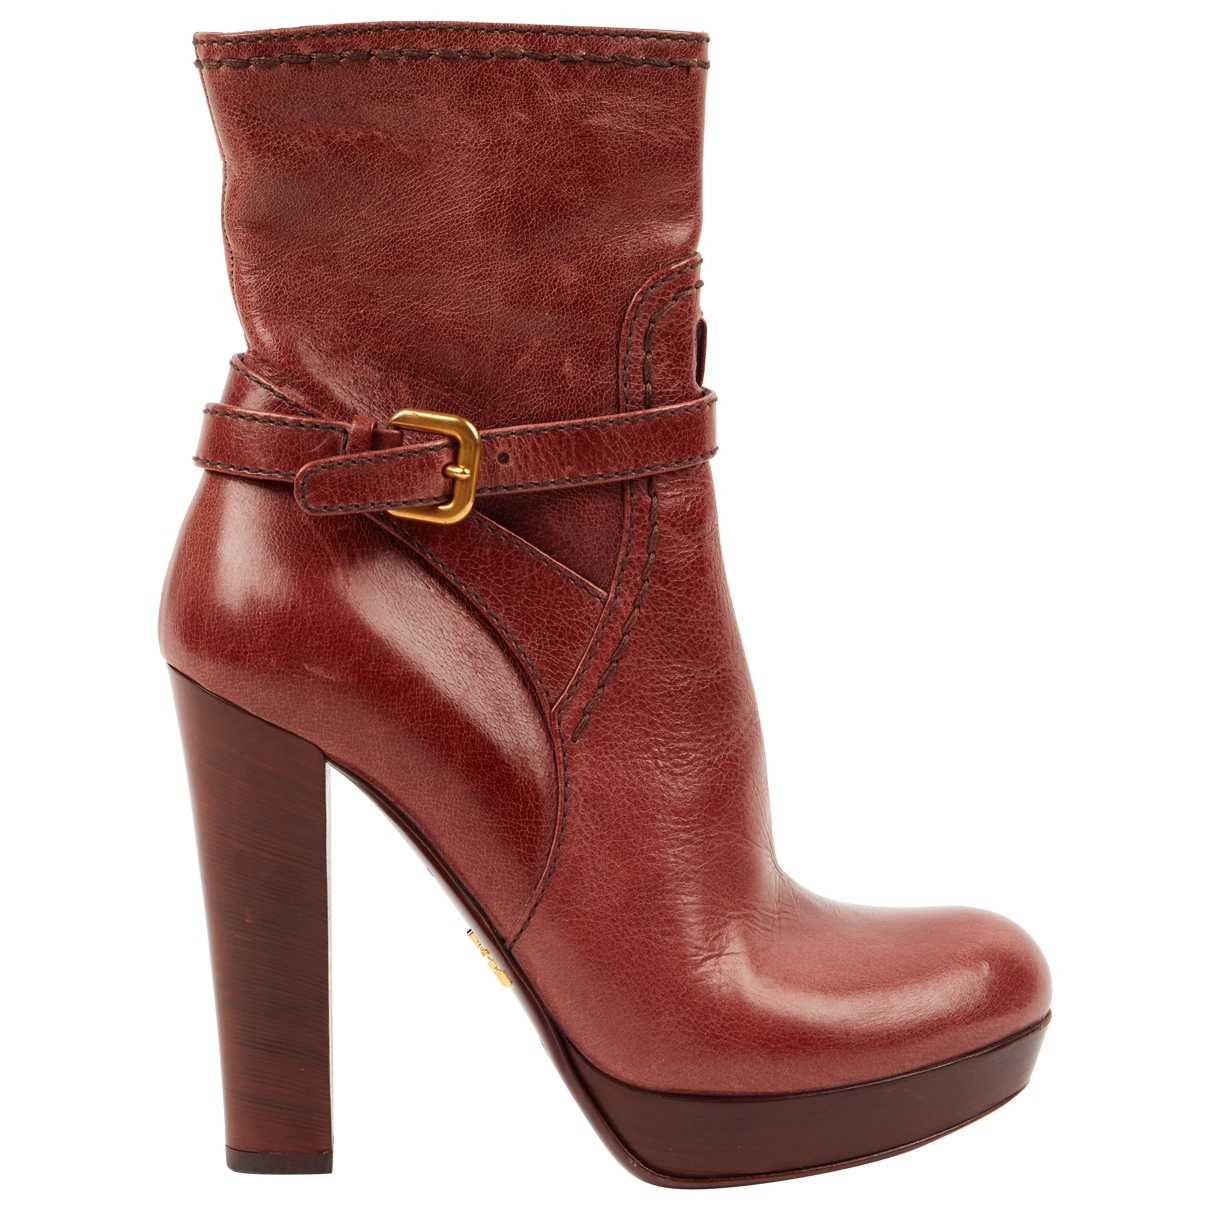 Prada \N Brown Leather Ankle boots for Women 38 EU